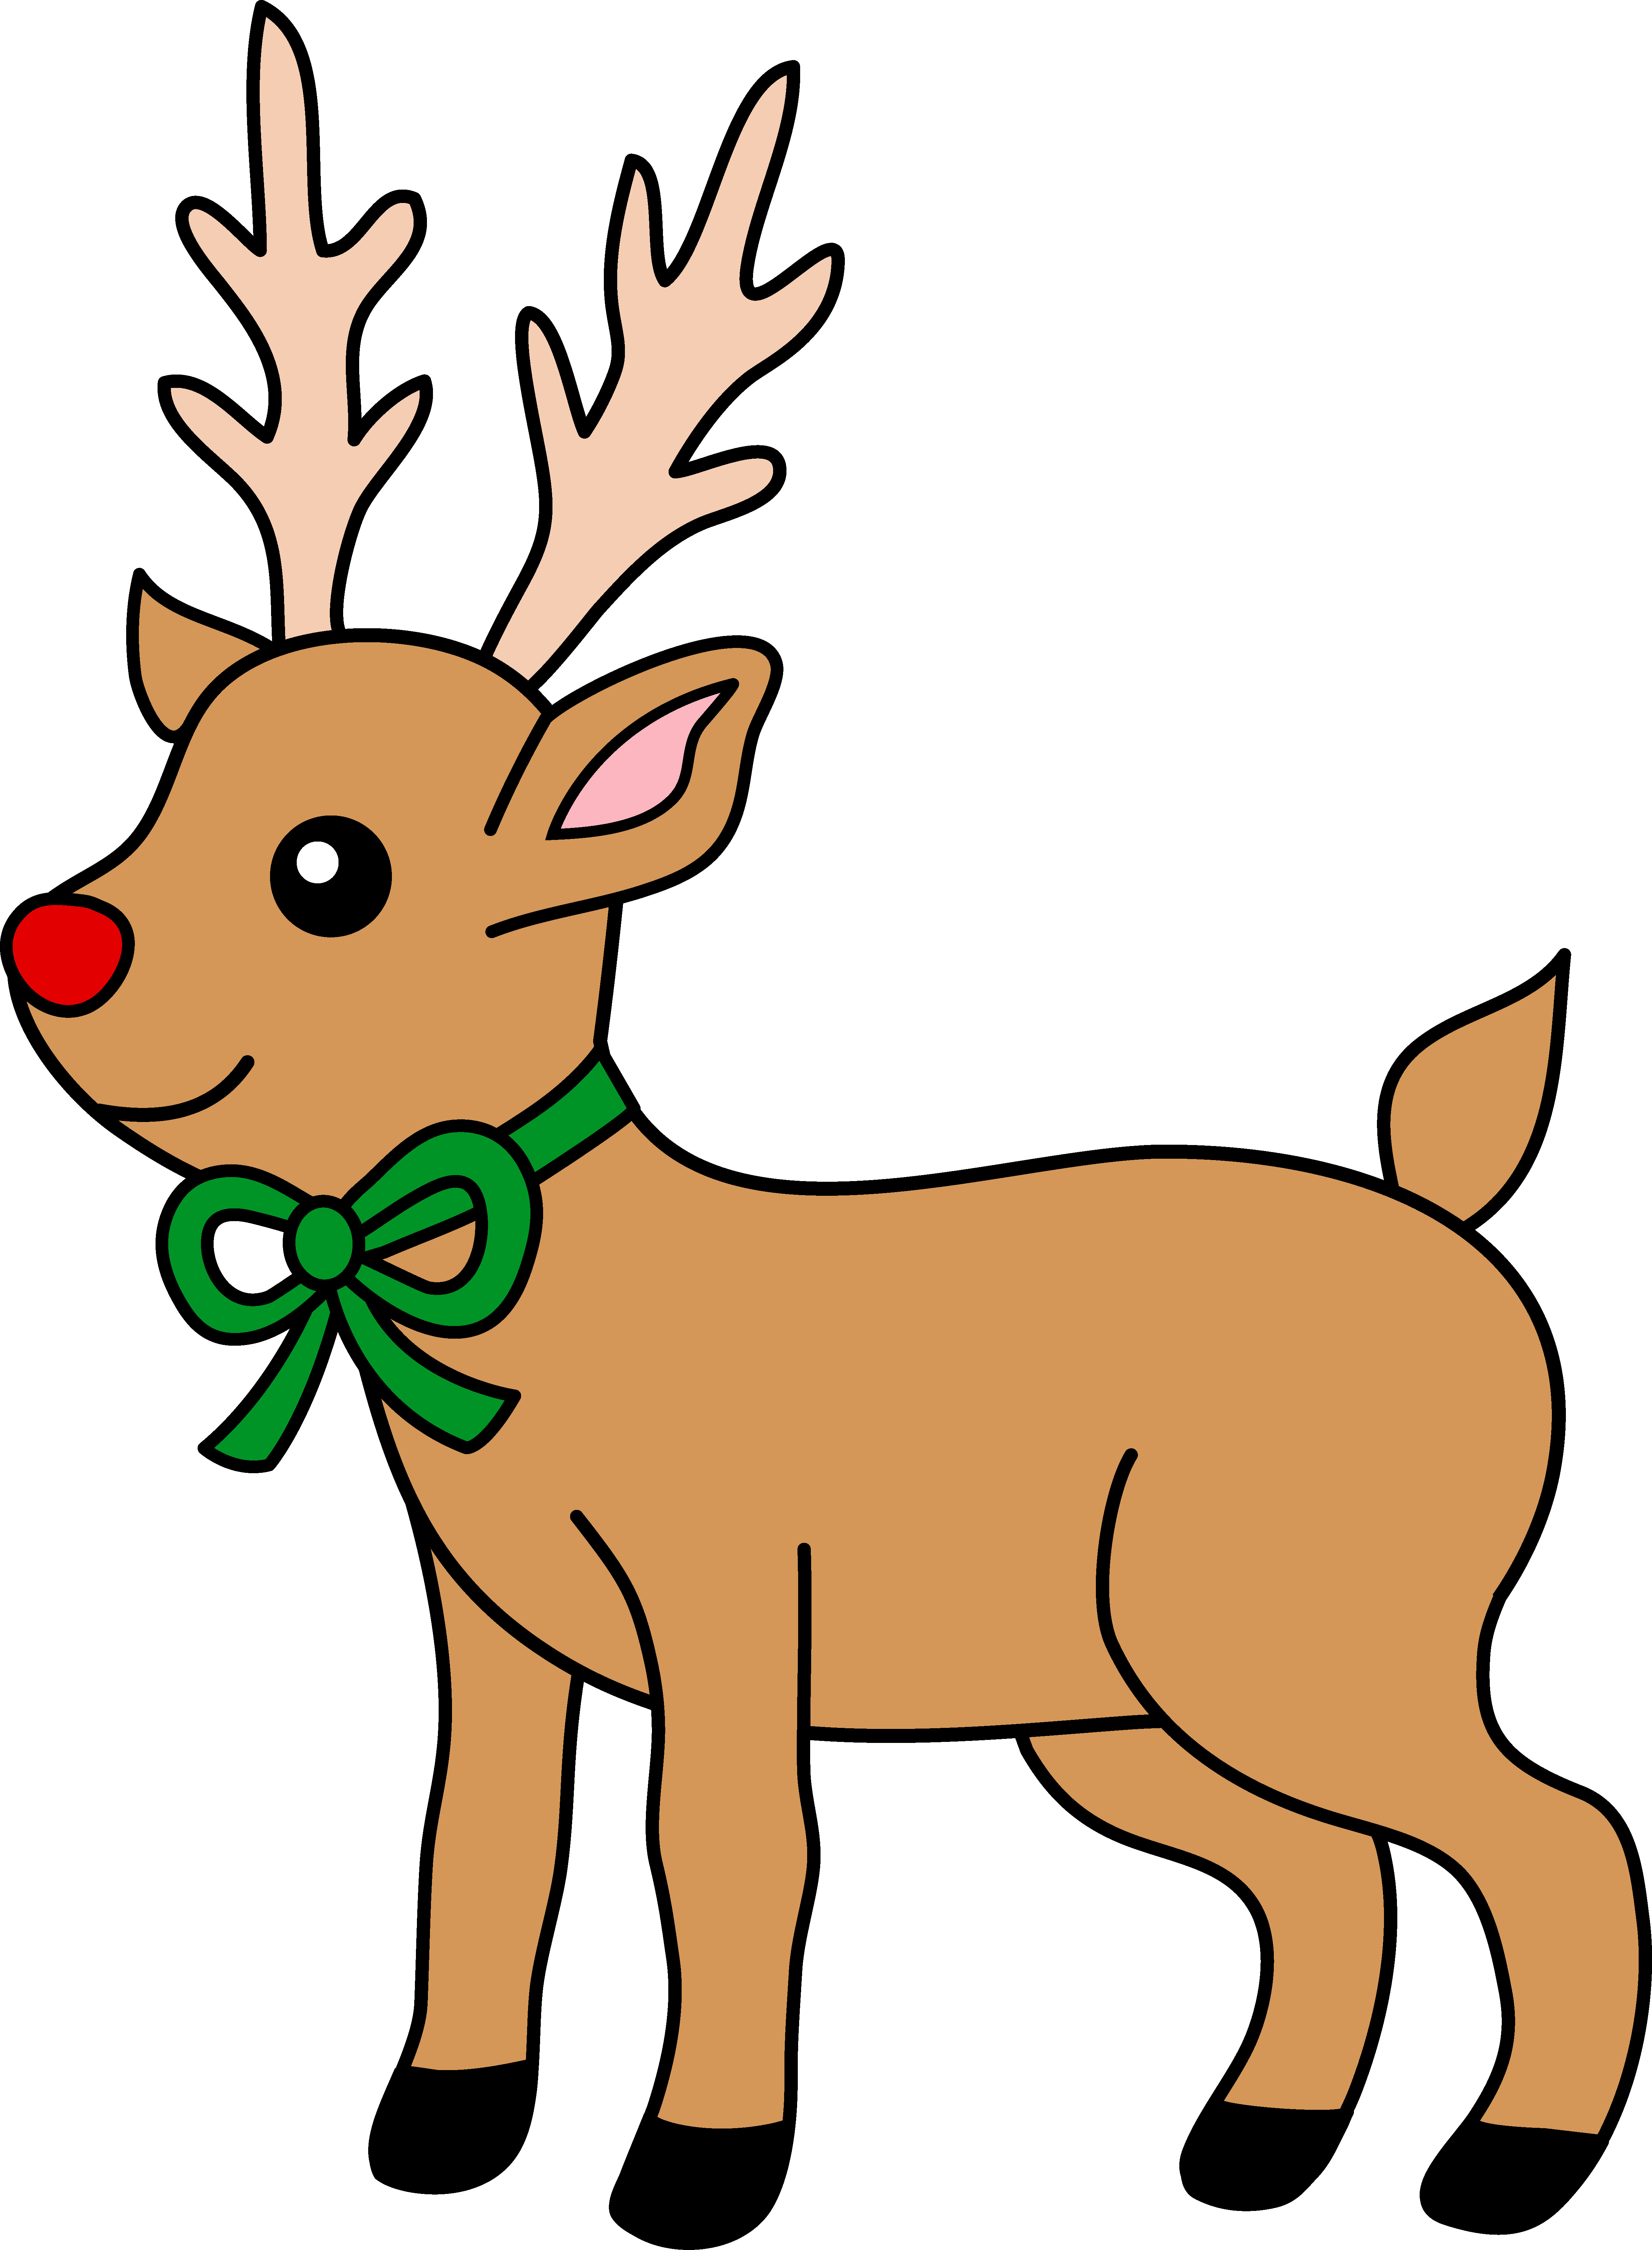 Cute red nosed free. Reindeer clipart simple image stock